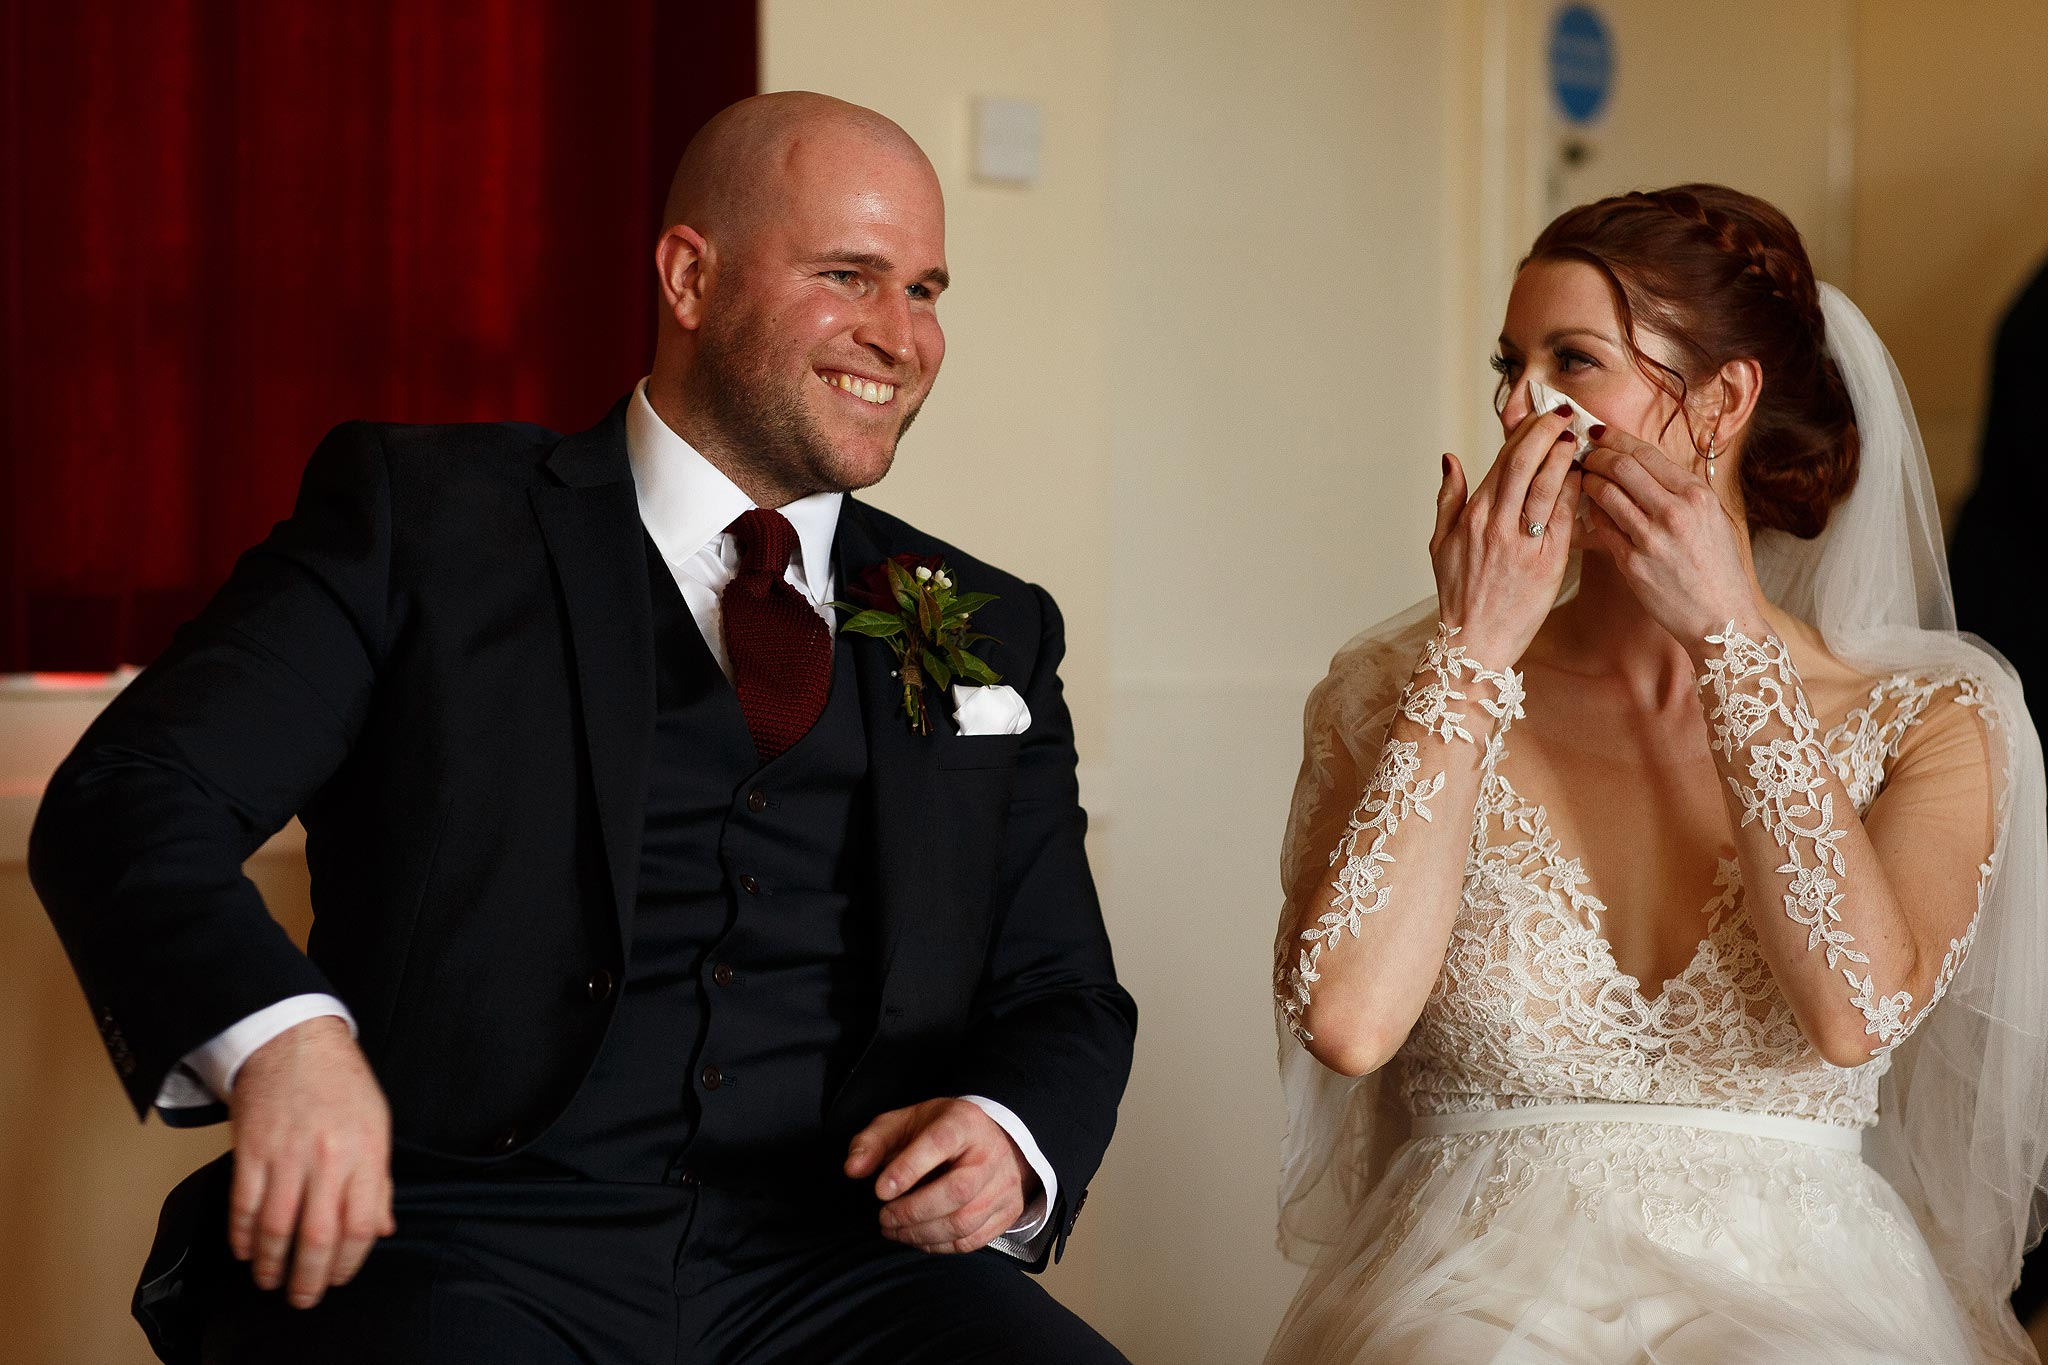 Emotional bride and groom during wedding ceremony at Downham Village Hall